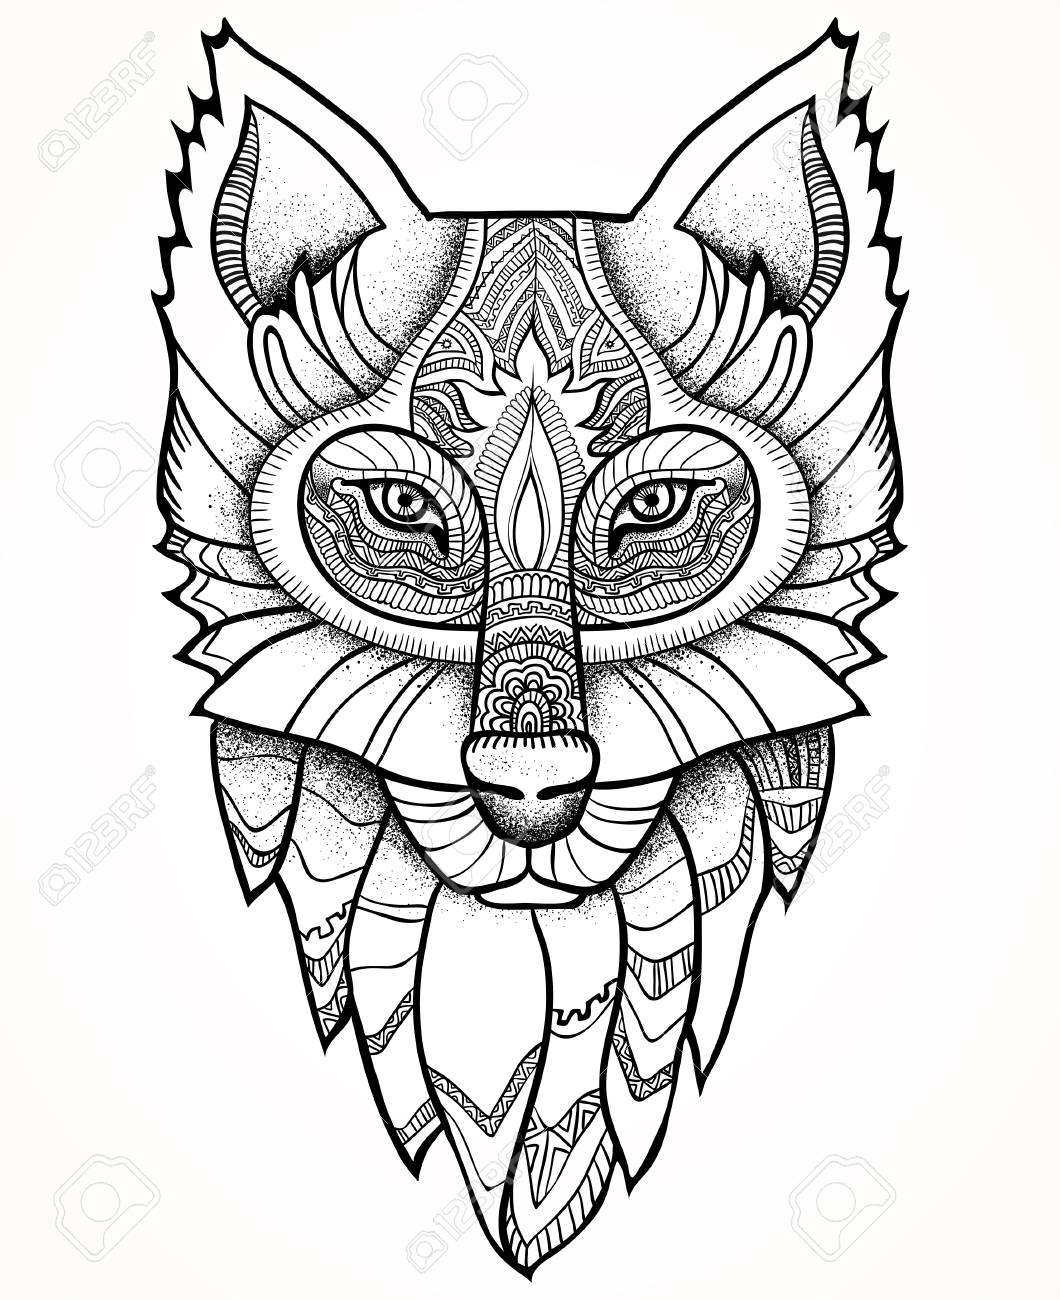 1060x1300 Vector Illustration. Ethnic Totem Wolf And Dreamcatcher. Doodle